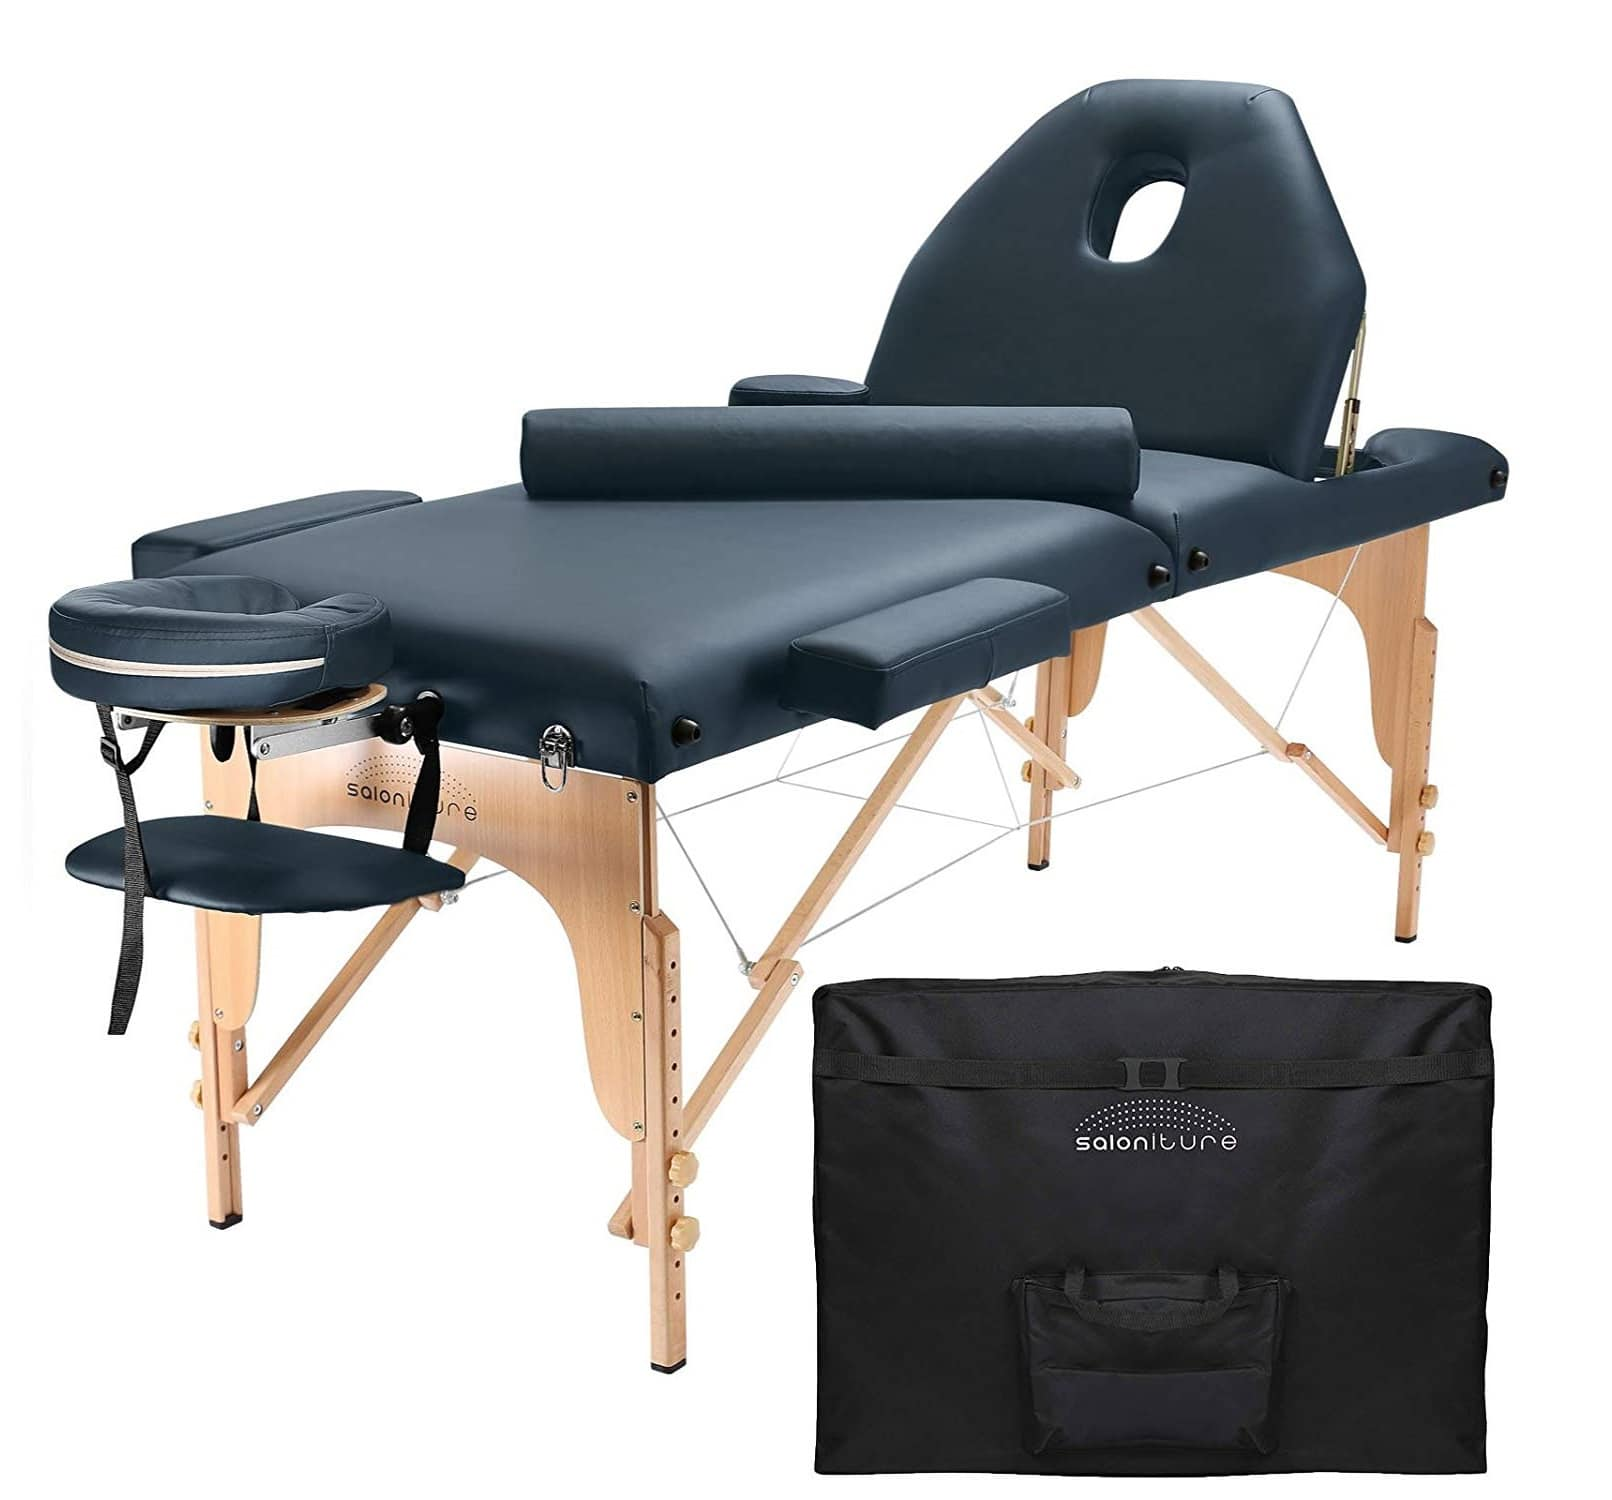 3.Saloniture Professional Portable Massage Table with Backrest - Blue